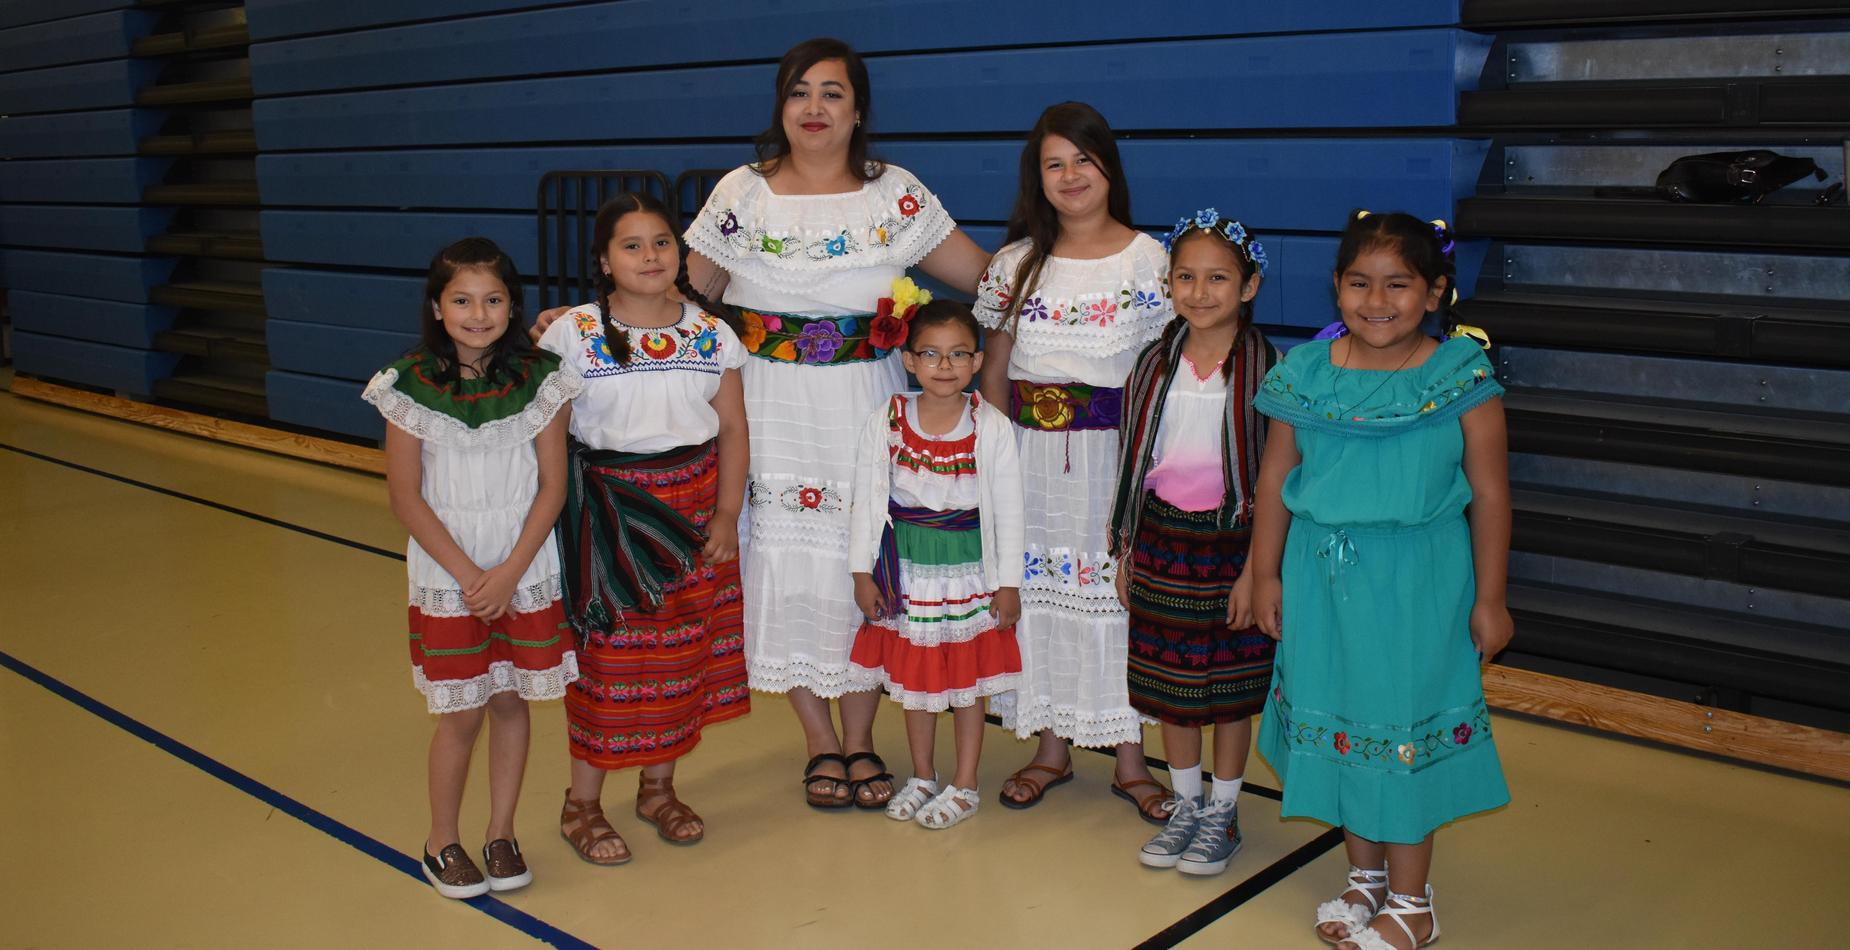 Seven girls dressed up for cultural dress day.